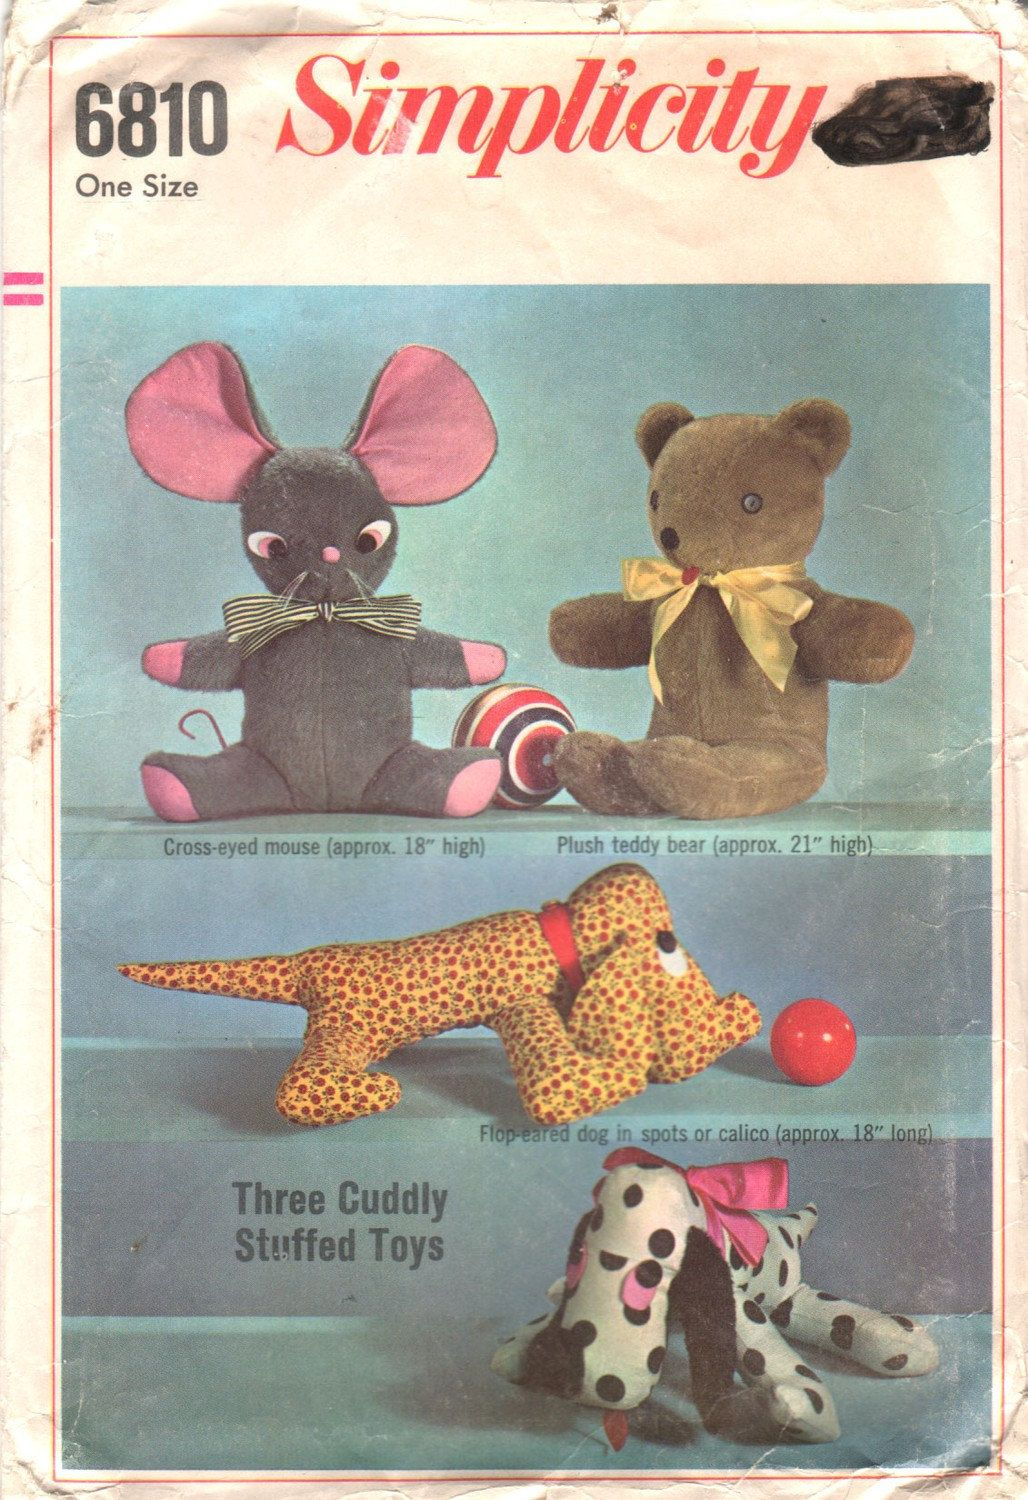 Vintage 60s uncut sewing pattern three cuddly stuffed animals vintage 60s uncut sewing pattern three cuddly soft toys simplicity 6810 mouse dog teddy bear jeuxipadfo Choice Image